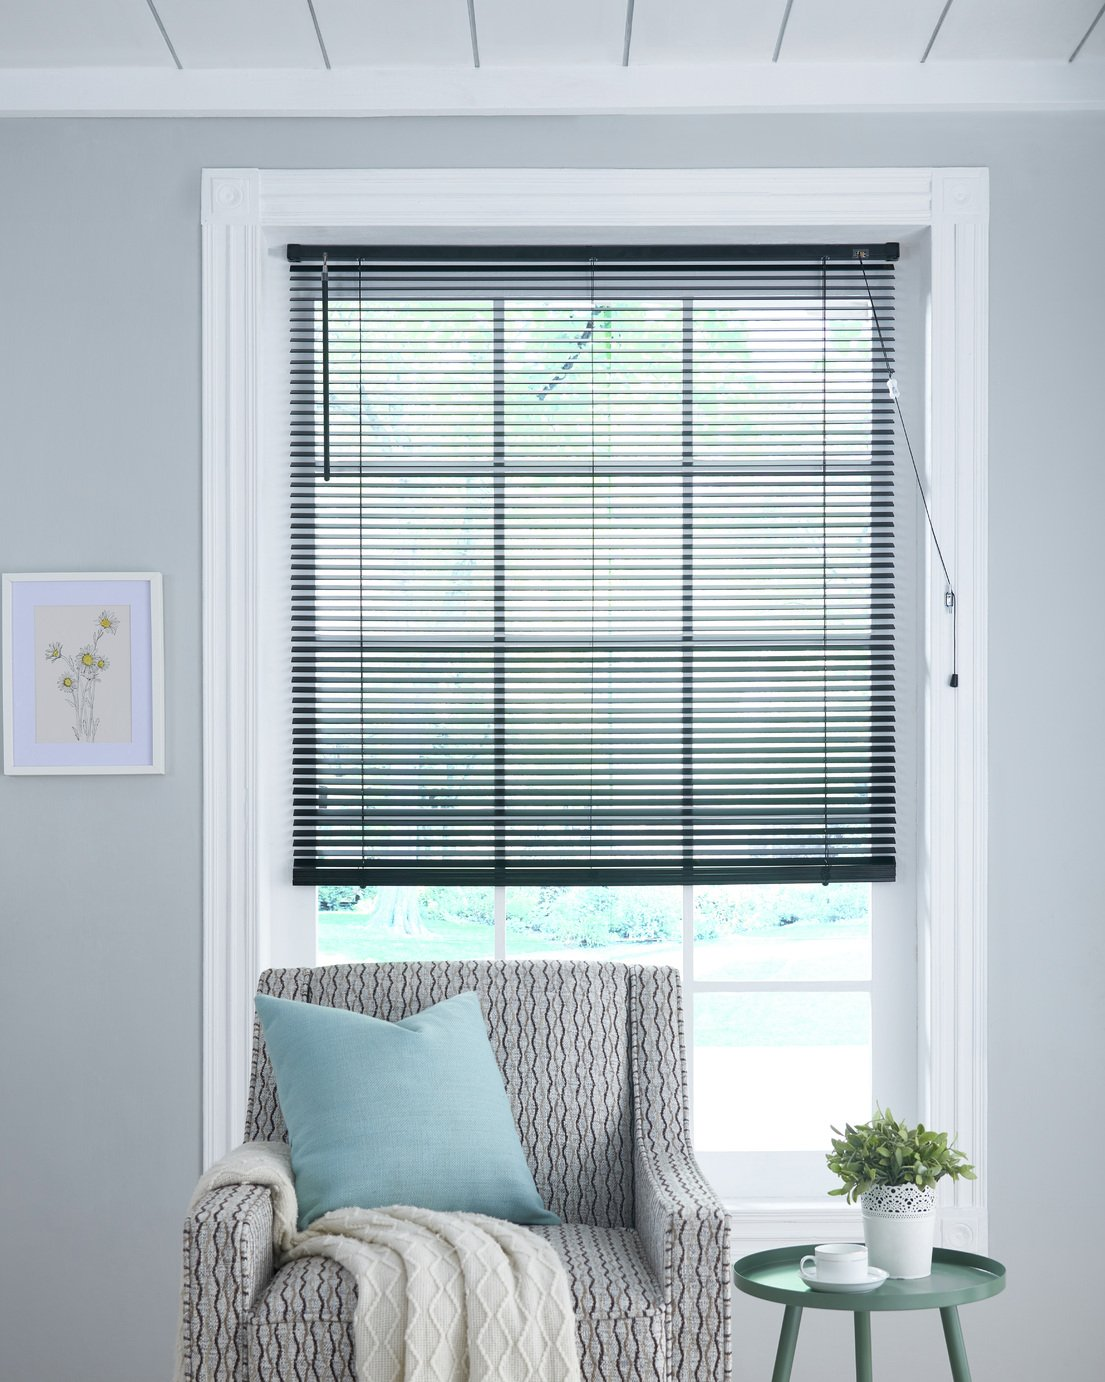 Little Black Book 25mm Venetian Blind - W90xL160cm - Black from The Little Black Book